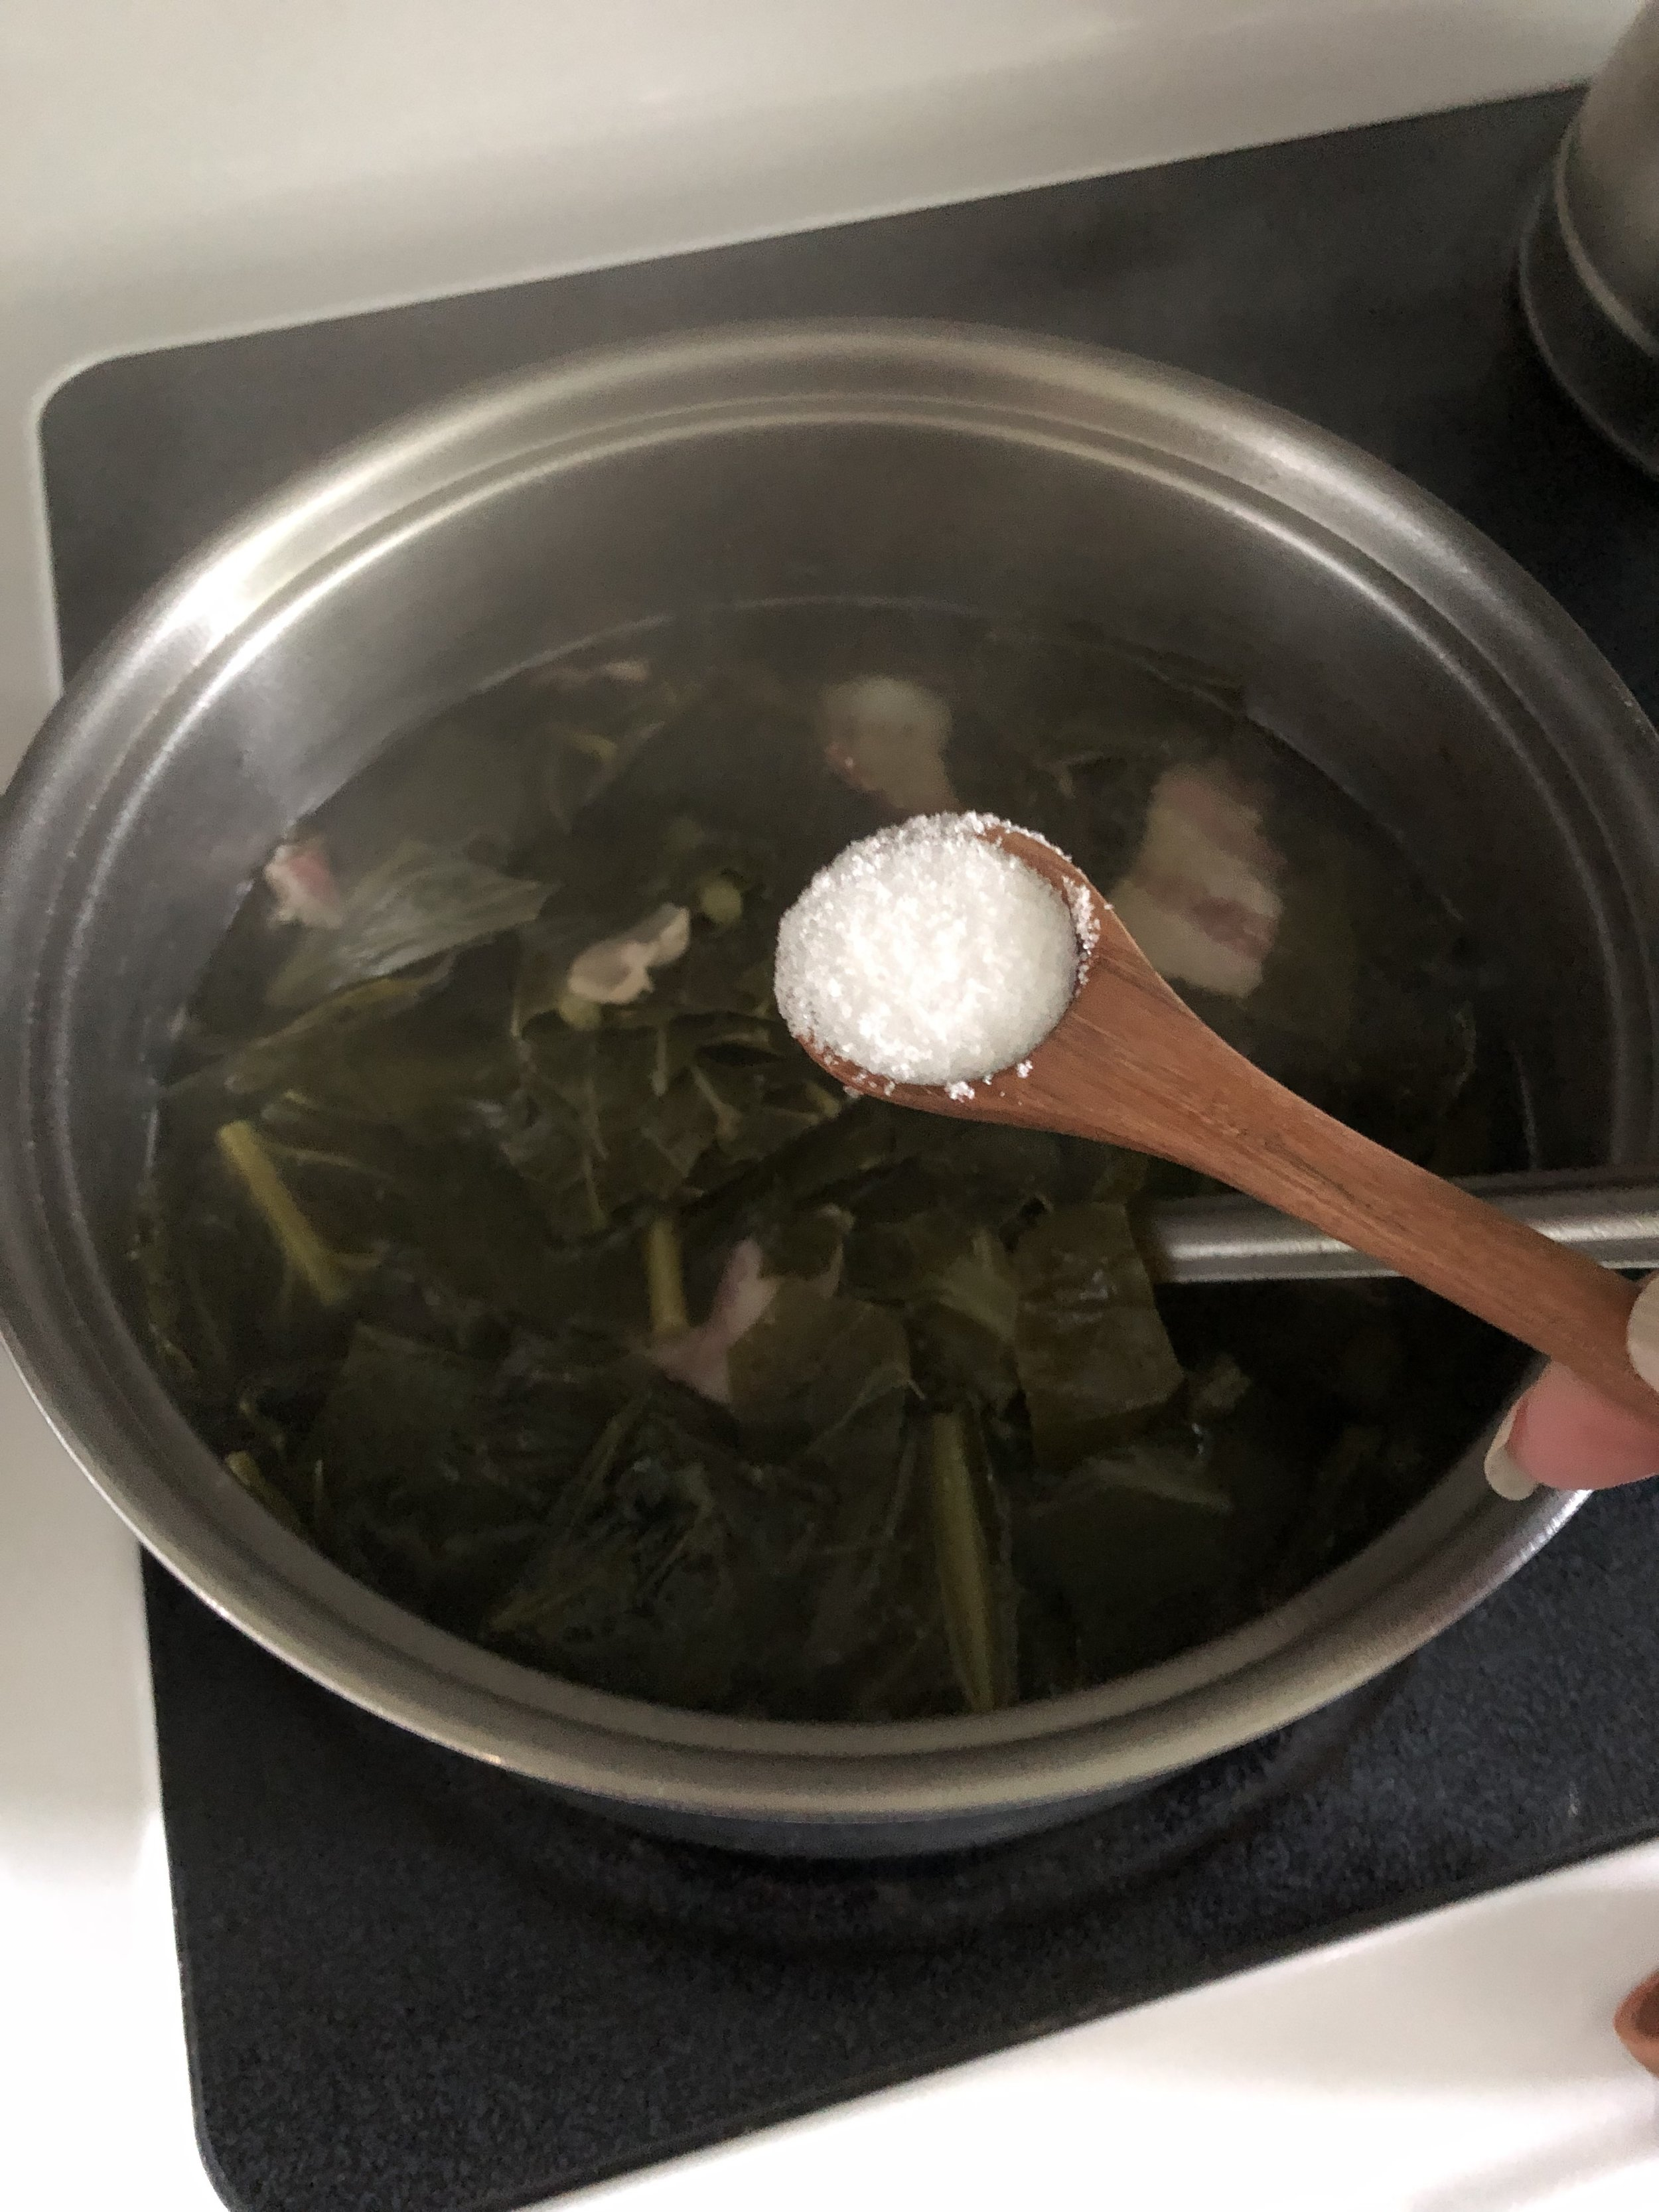 After 4o minutes and while Collards are still on Stove, Add 2 teaspoons Salt, 1/2 teaspooon Pepper, 3 Tablespoons Red Wine Vinegar, 2 - 3 Tablespoons Honey, Continue cooking for an additional 20-25 minutes.